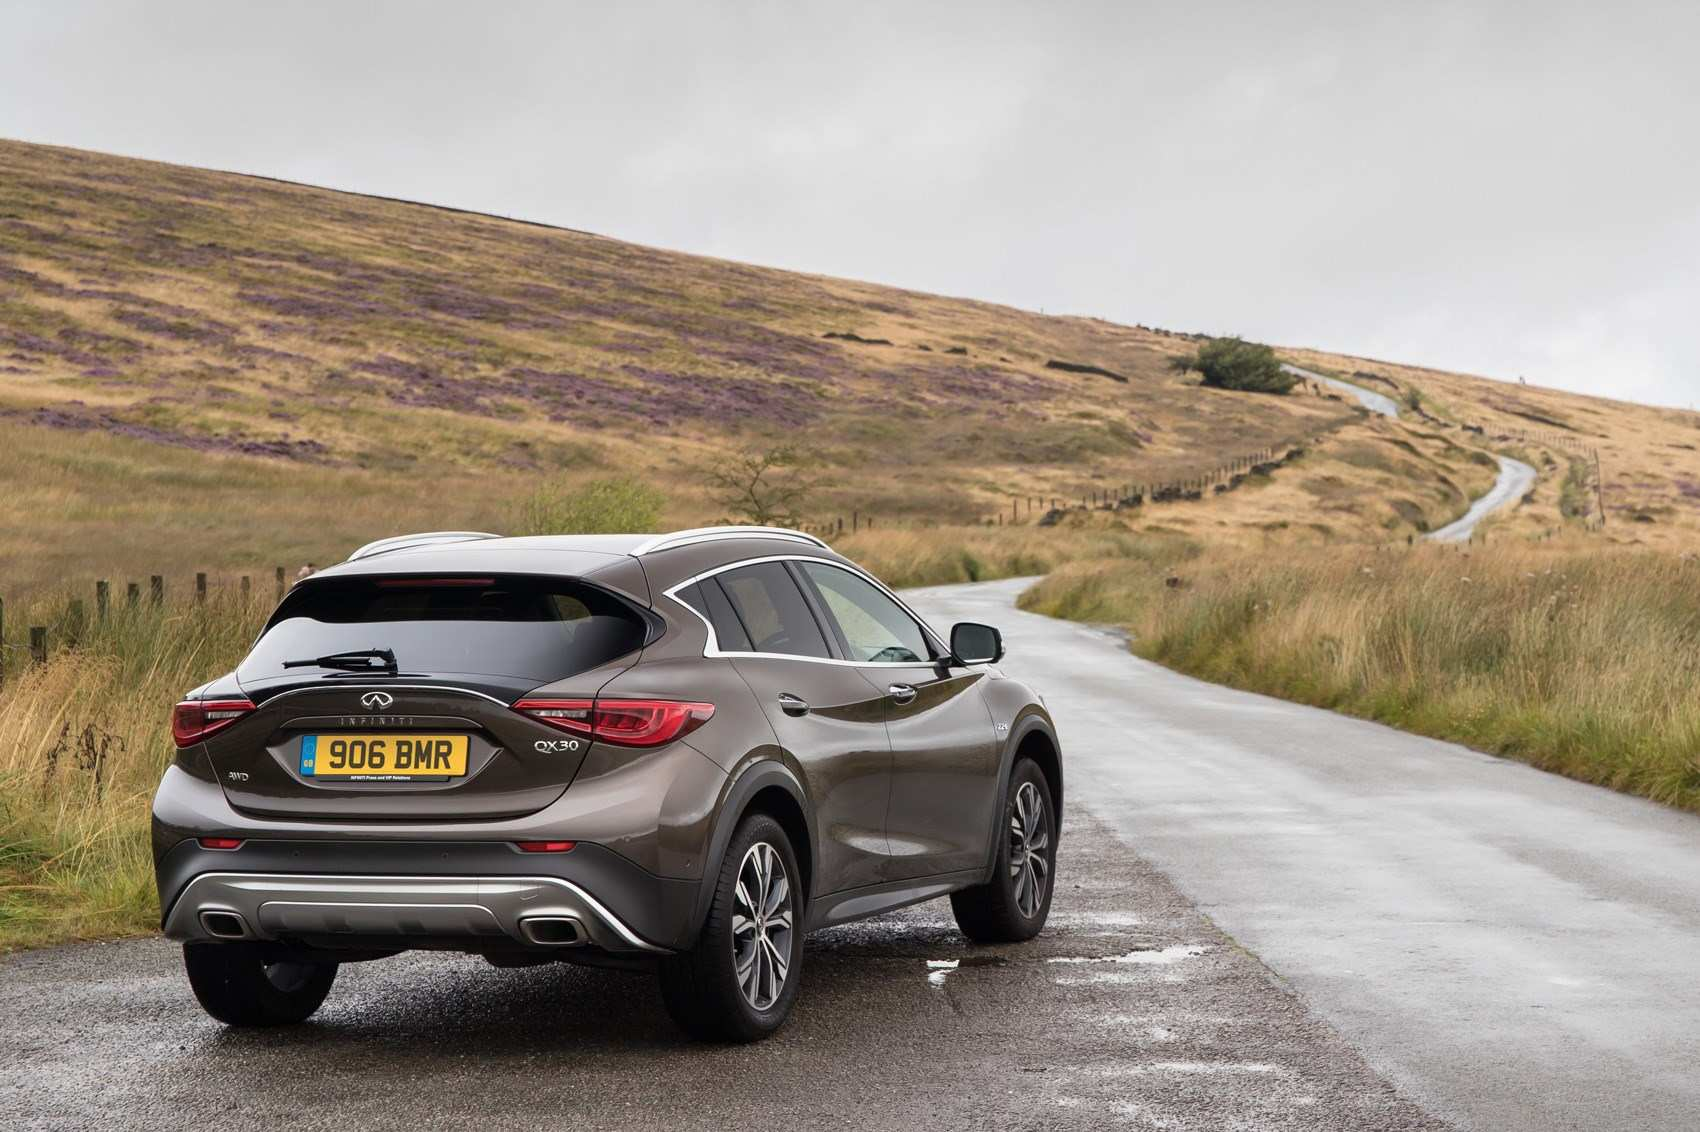 52 Best Review Infiniti Europe 2020 Performance with Infiniti Europe 2020